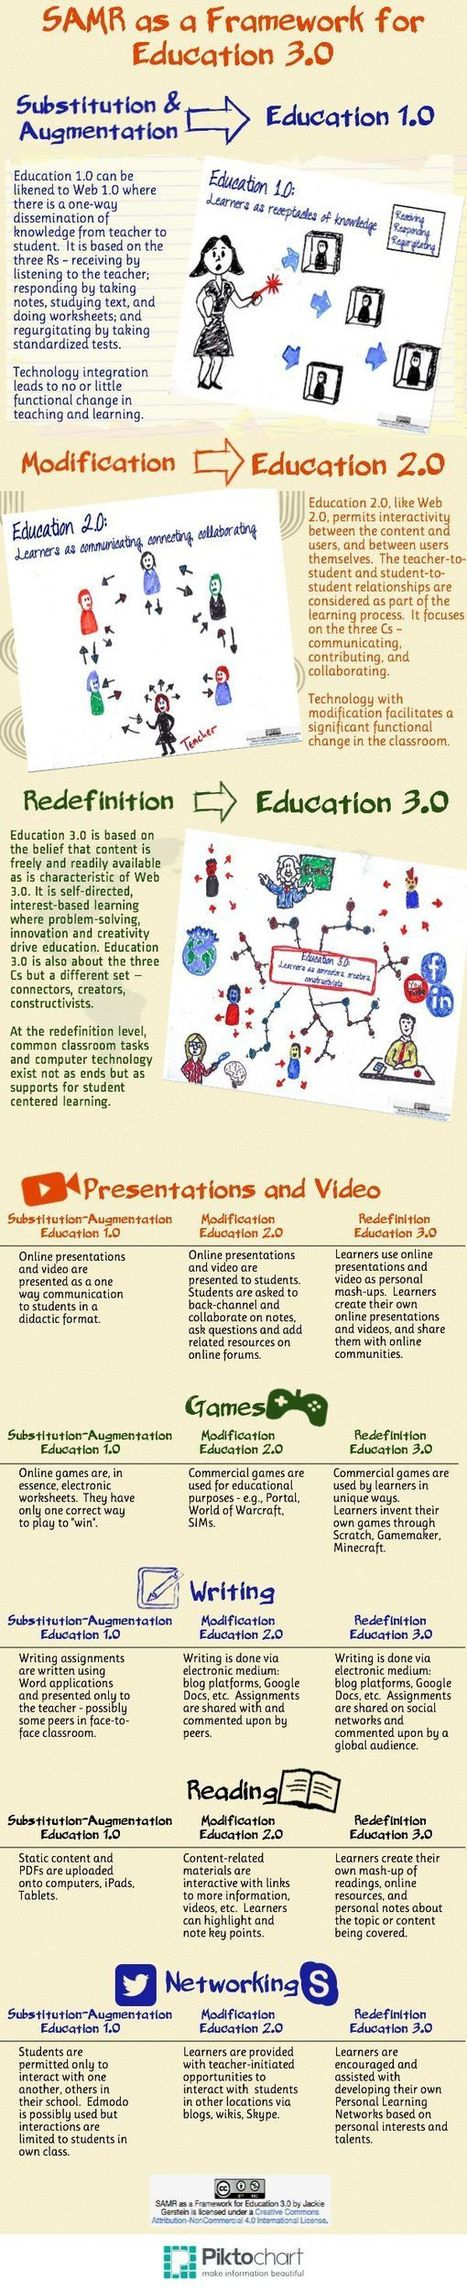 SAMR as a framework for Education 3.0 | Education Visuals | Pinterest | ICT and Library in Primary Schools | Scoop.it